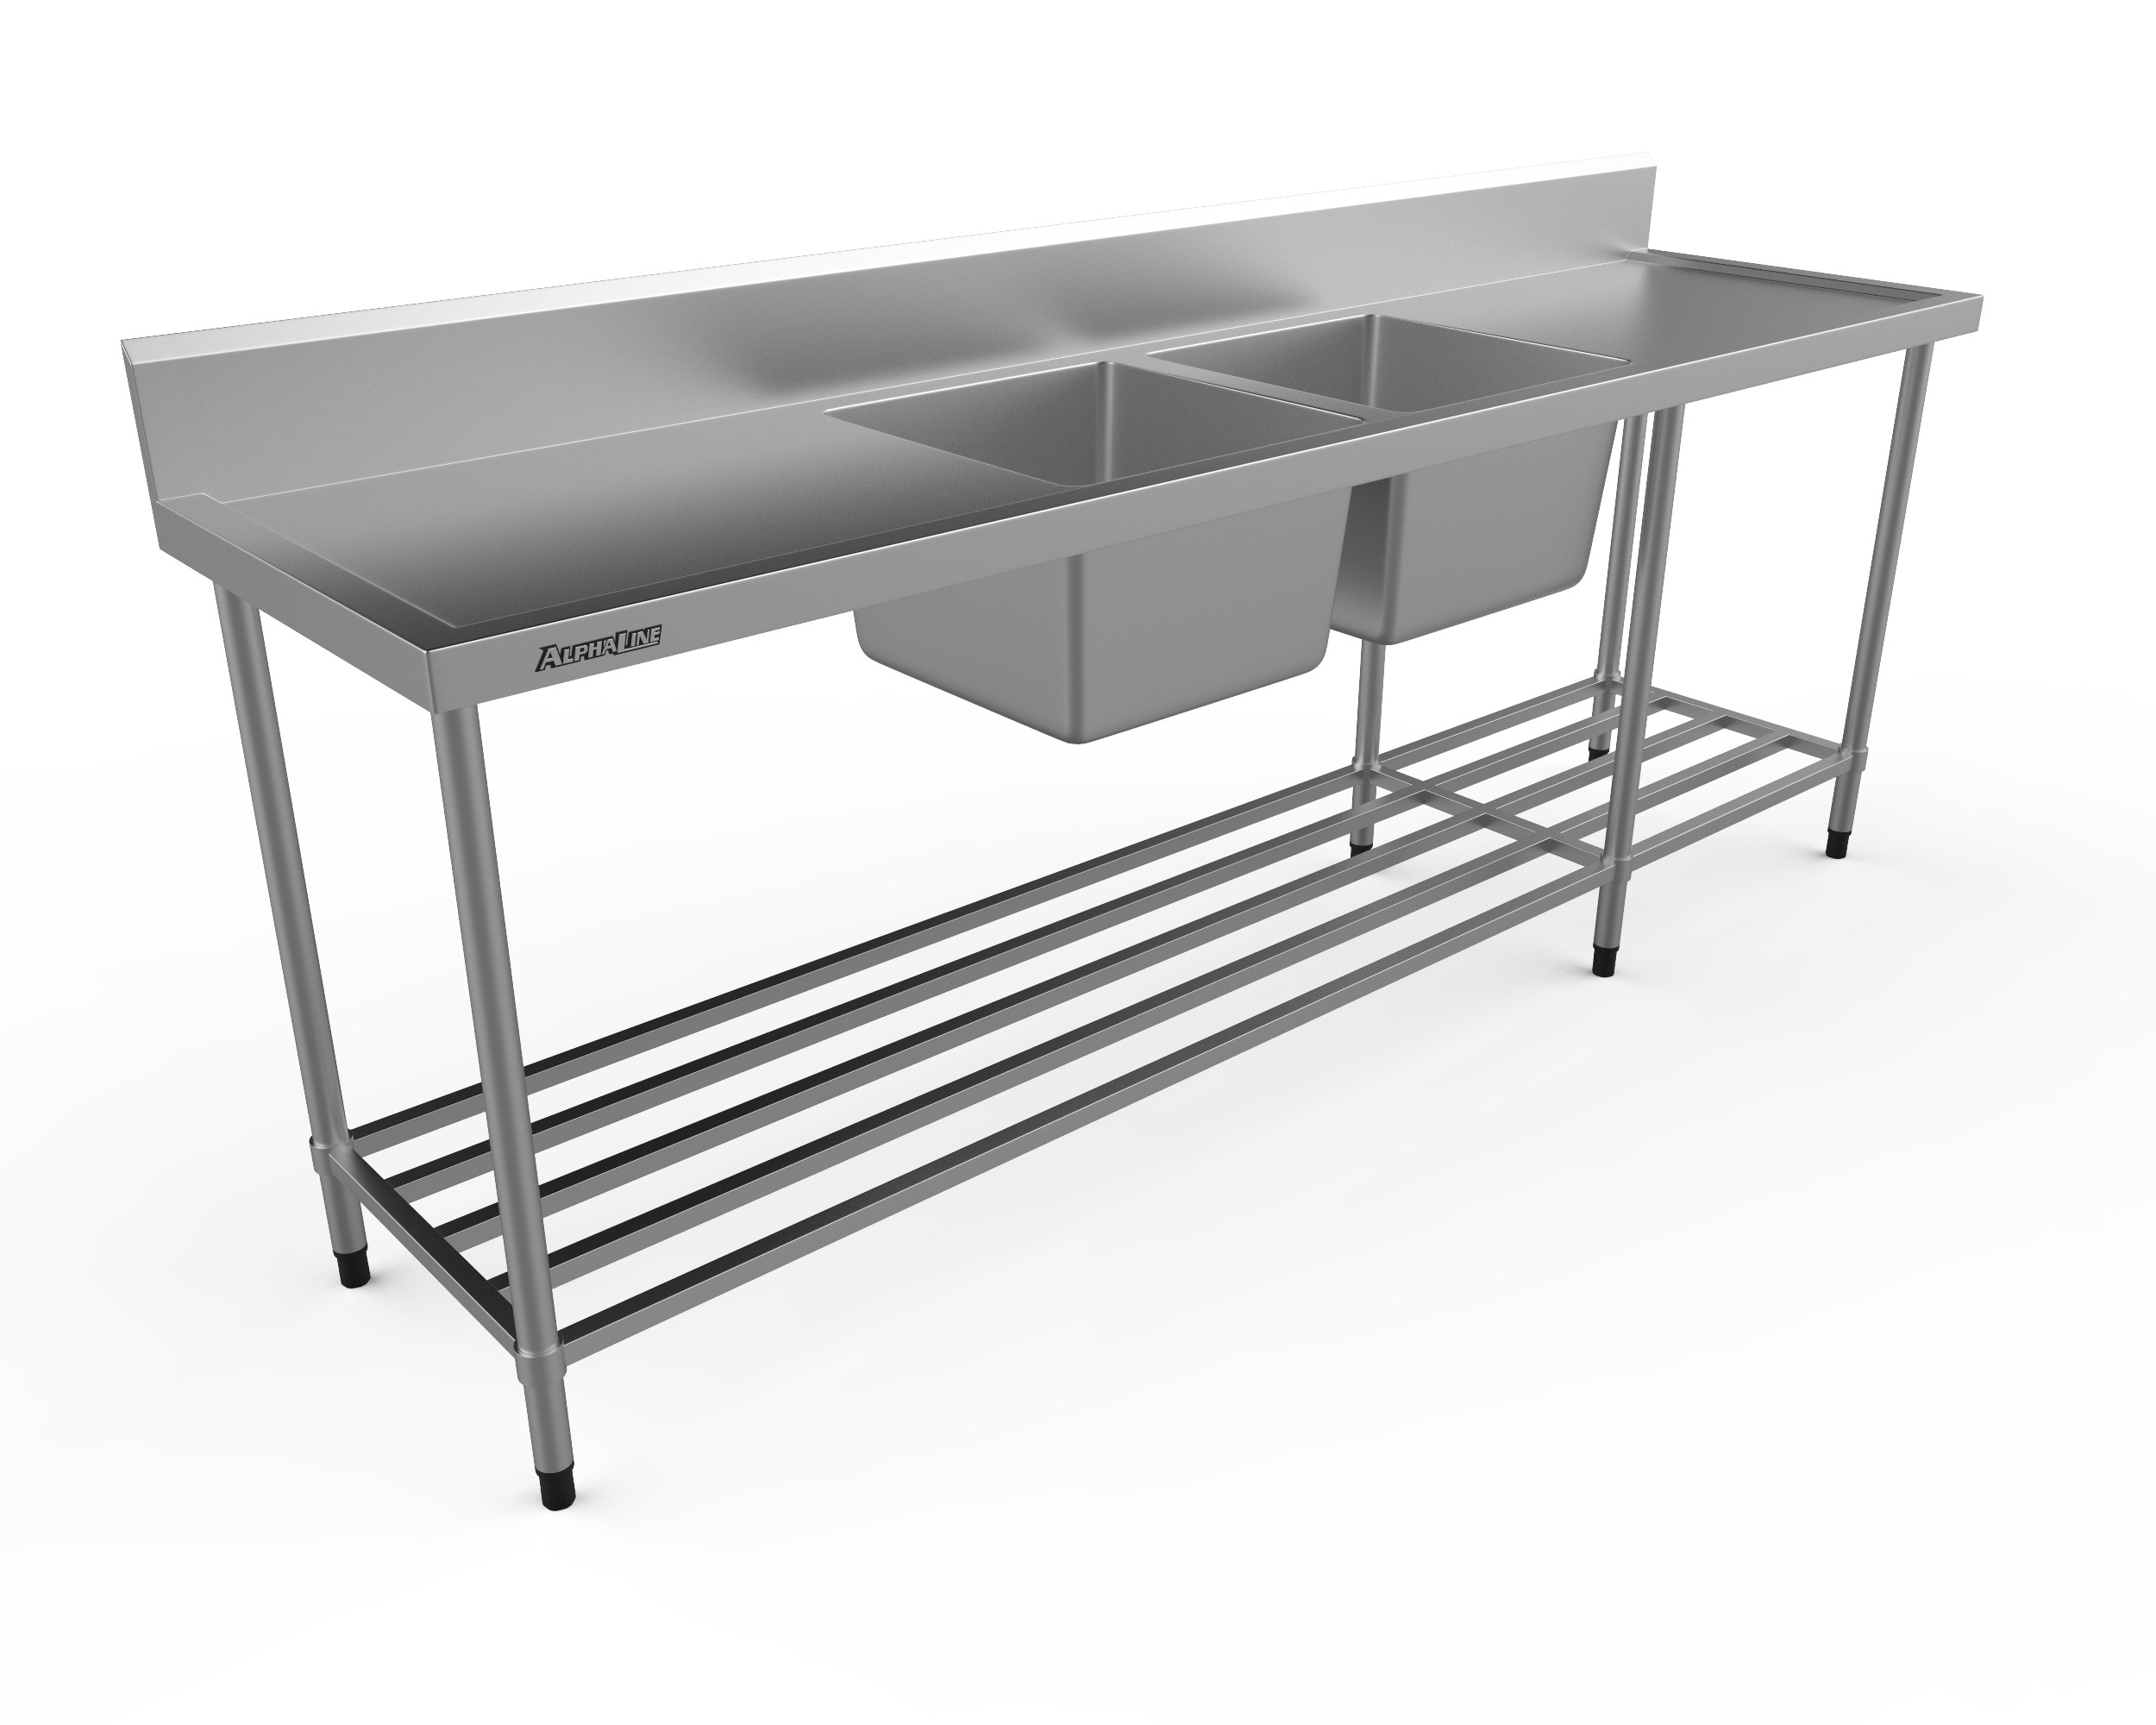 Stainless Steel Double Sink Bench, 2400 x 600 Centre Bowls - XS2-60240C